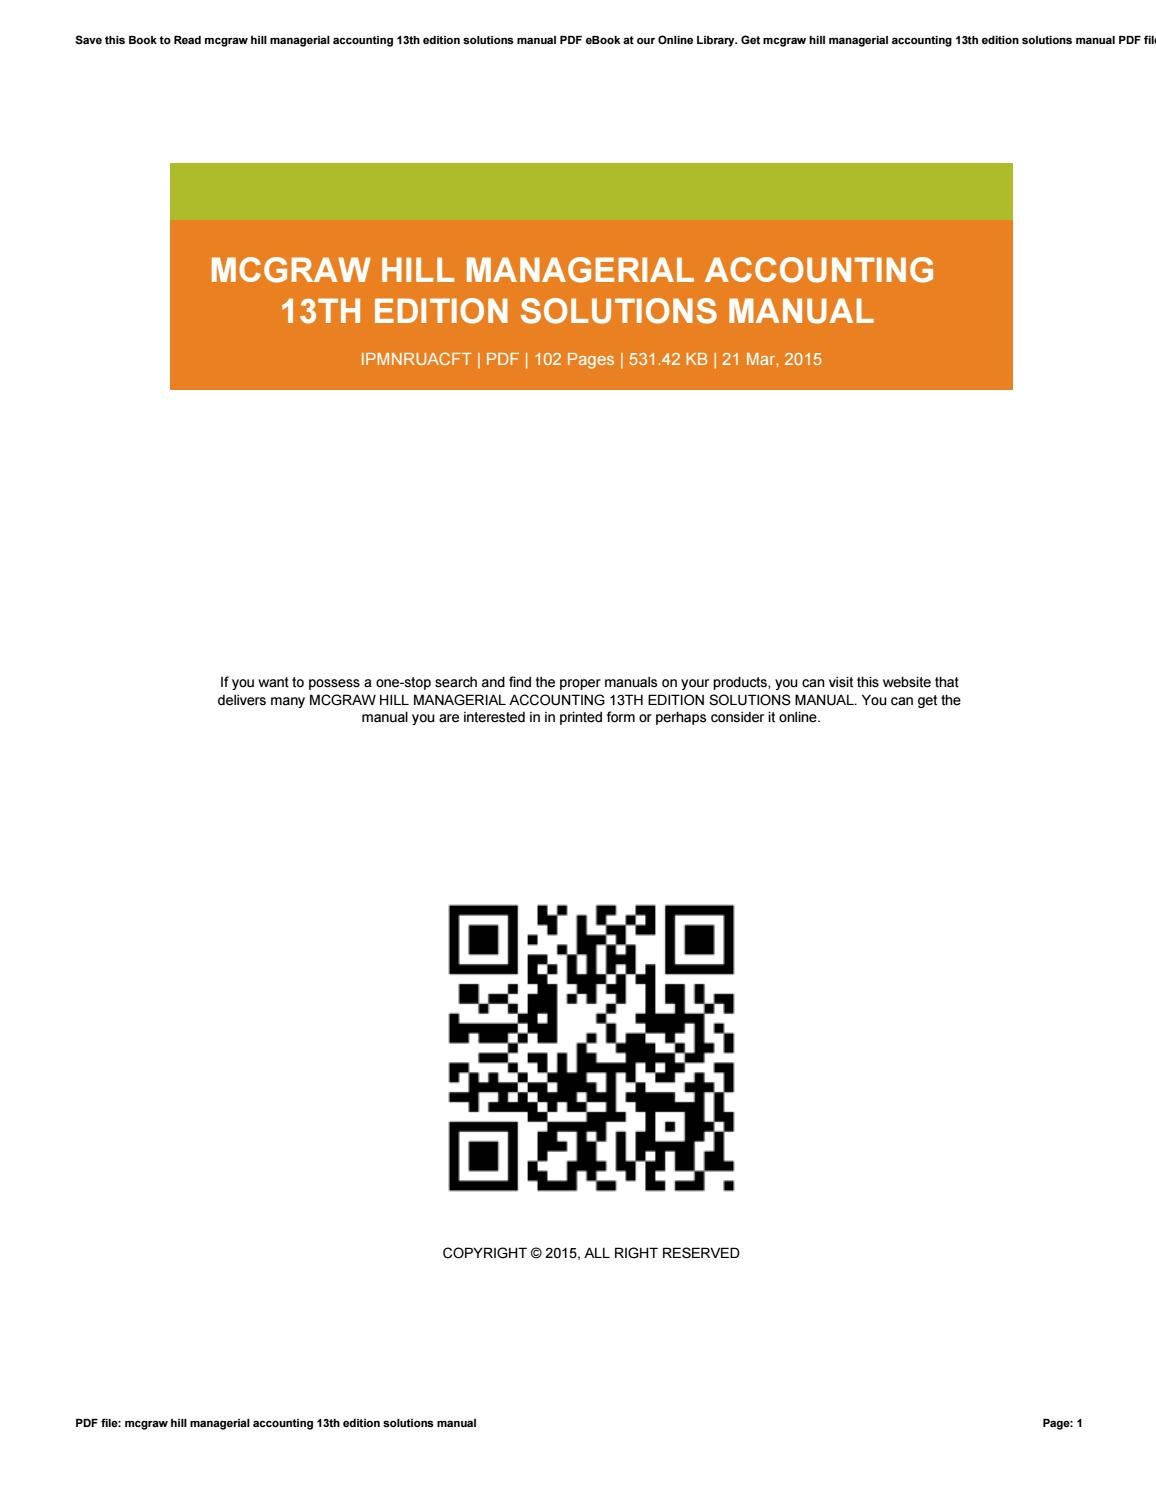 Mcgraw hill managerial accounting 13th edition solutions manual by c5702 -  issuu